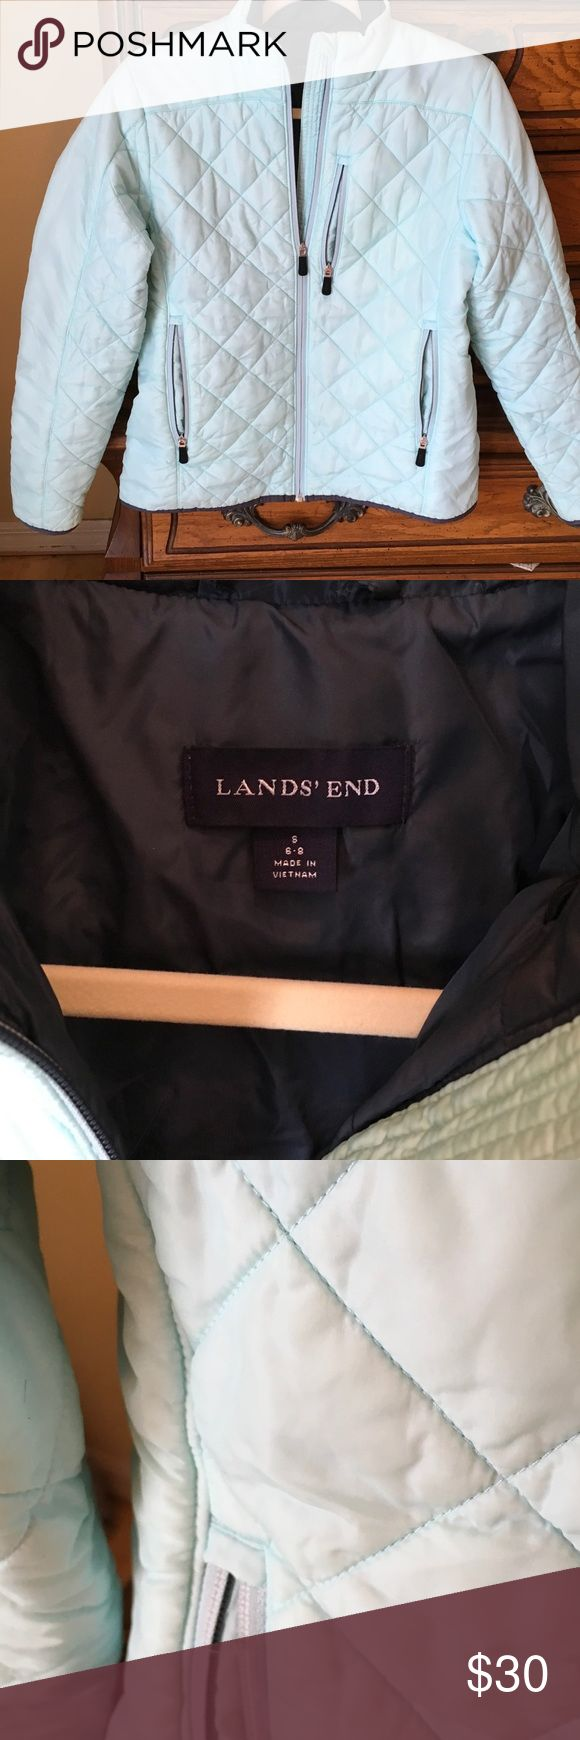 Lans's End baby-blue puffer jacket Small Lands' End Jackets & Coats Puffers